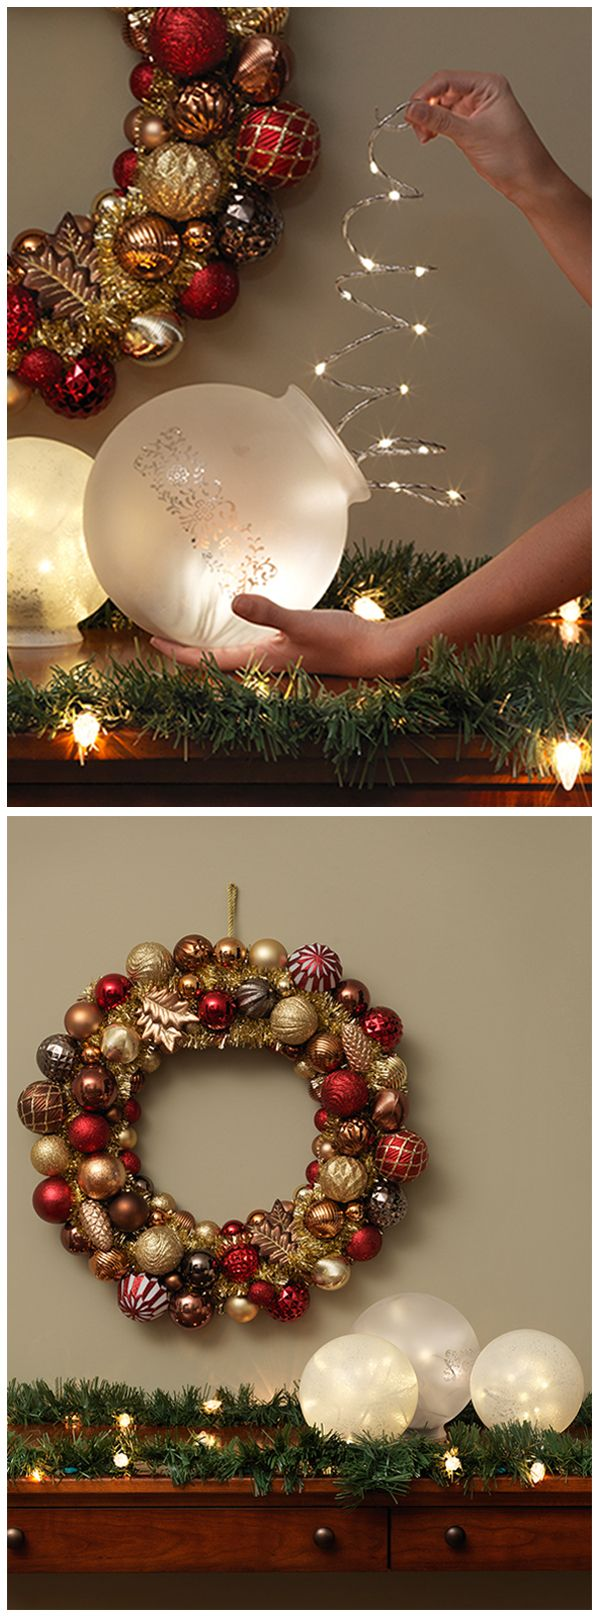 1814 best diy christmas 3 images on pinterest | diy christmas